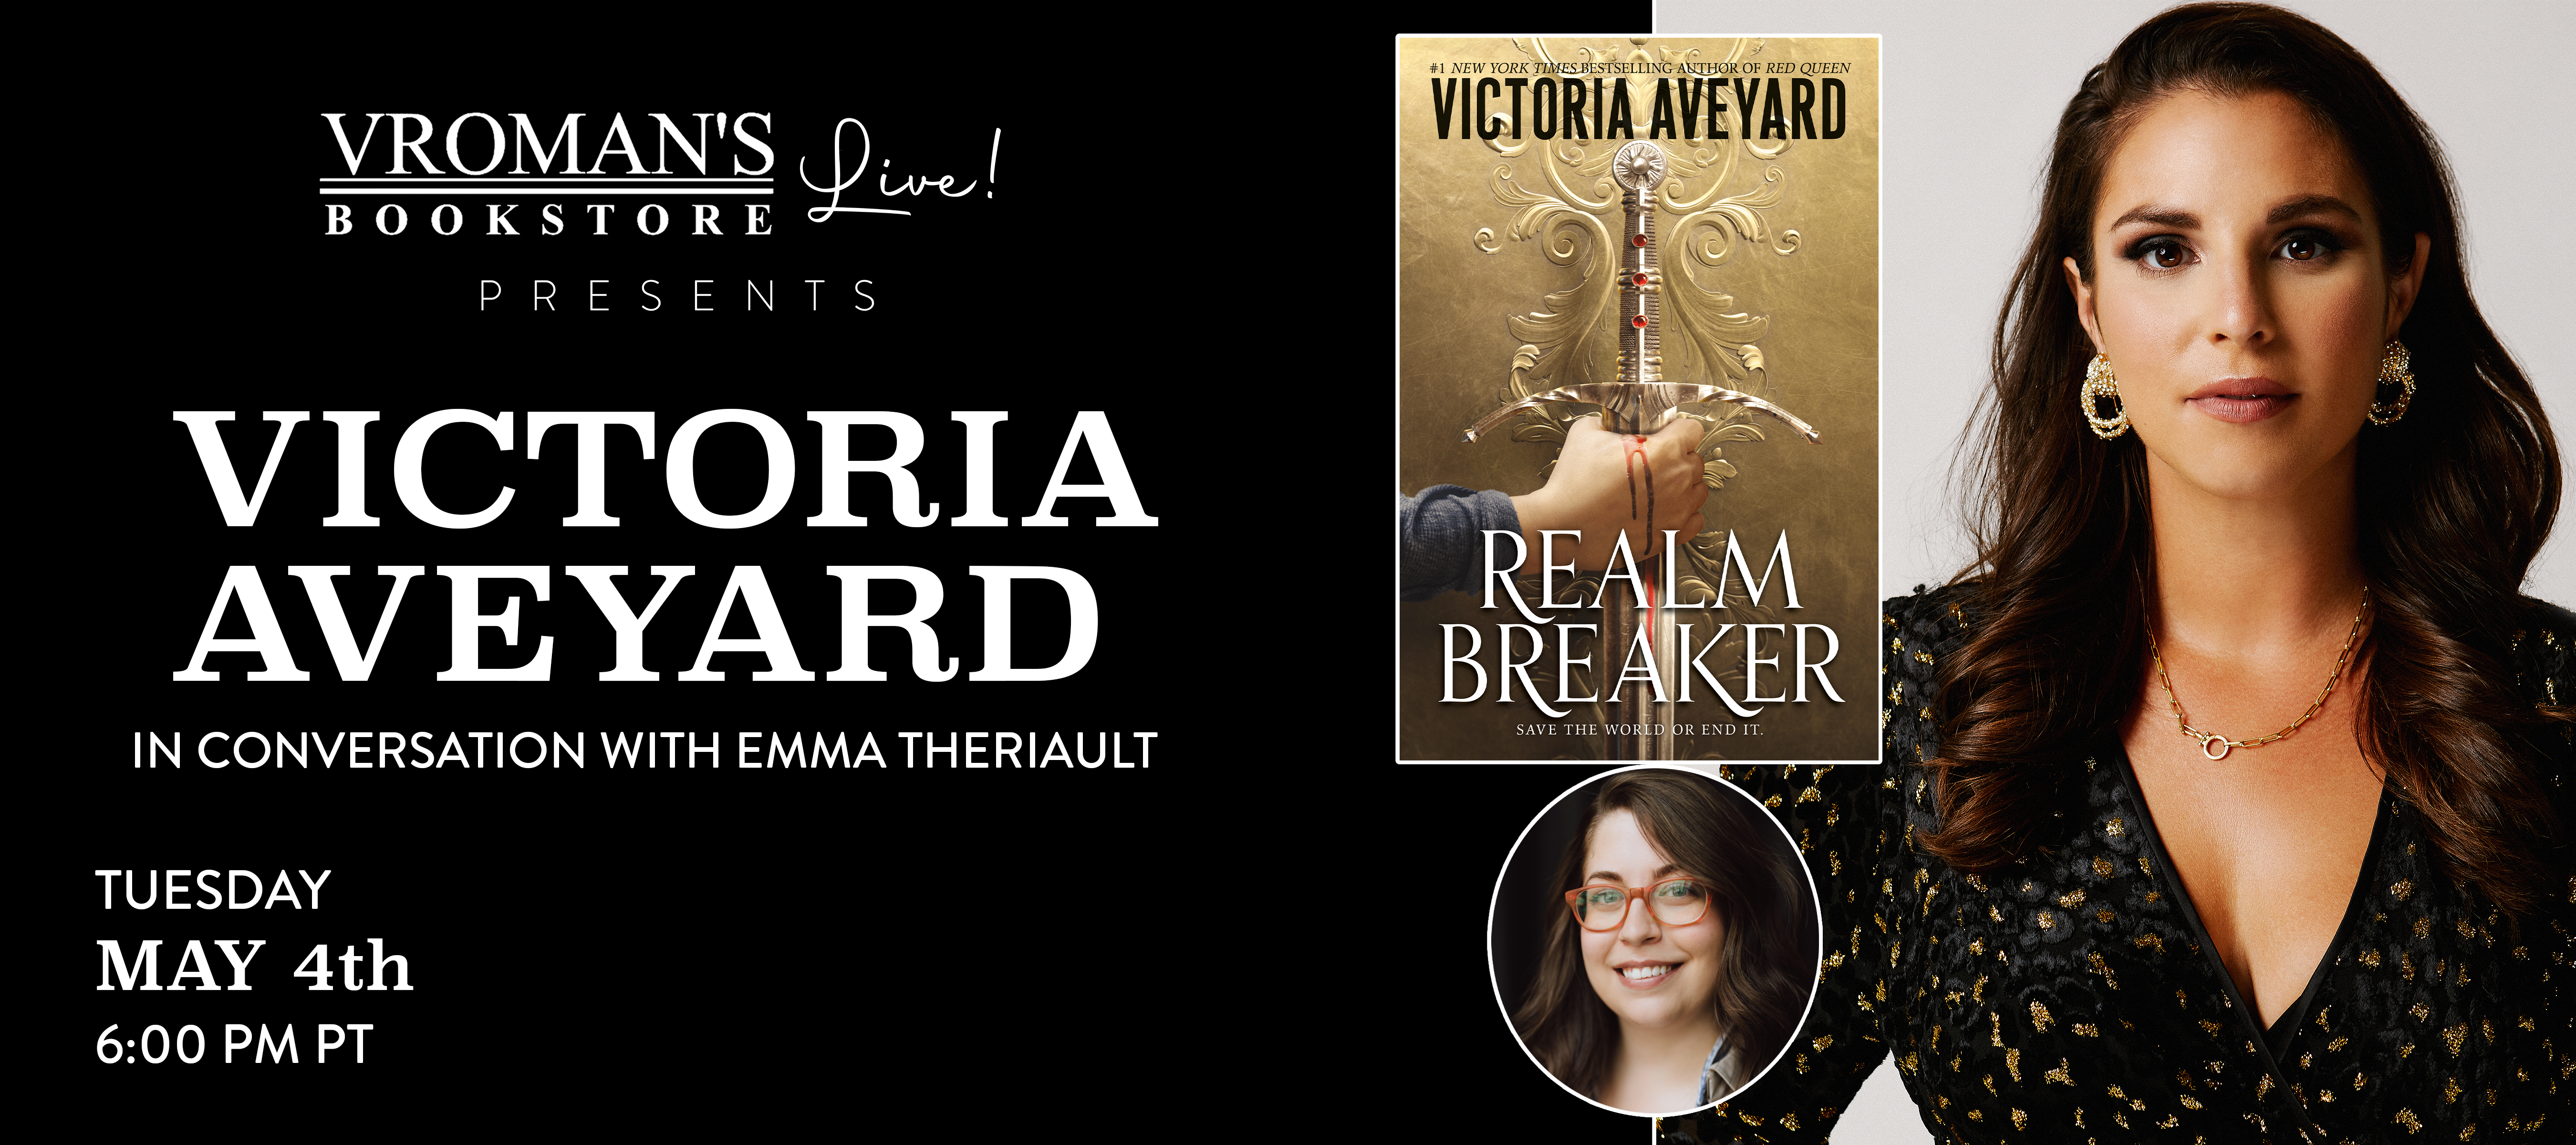 Victoria Aveyard, in conversation with Emma Theriault, on Tuesday May 4th at 6pm. This is a ticketed event.